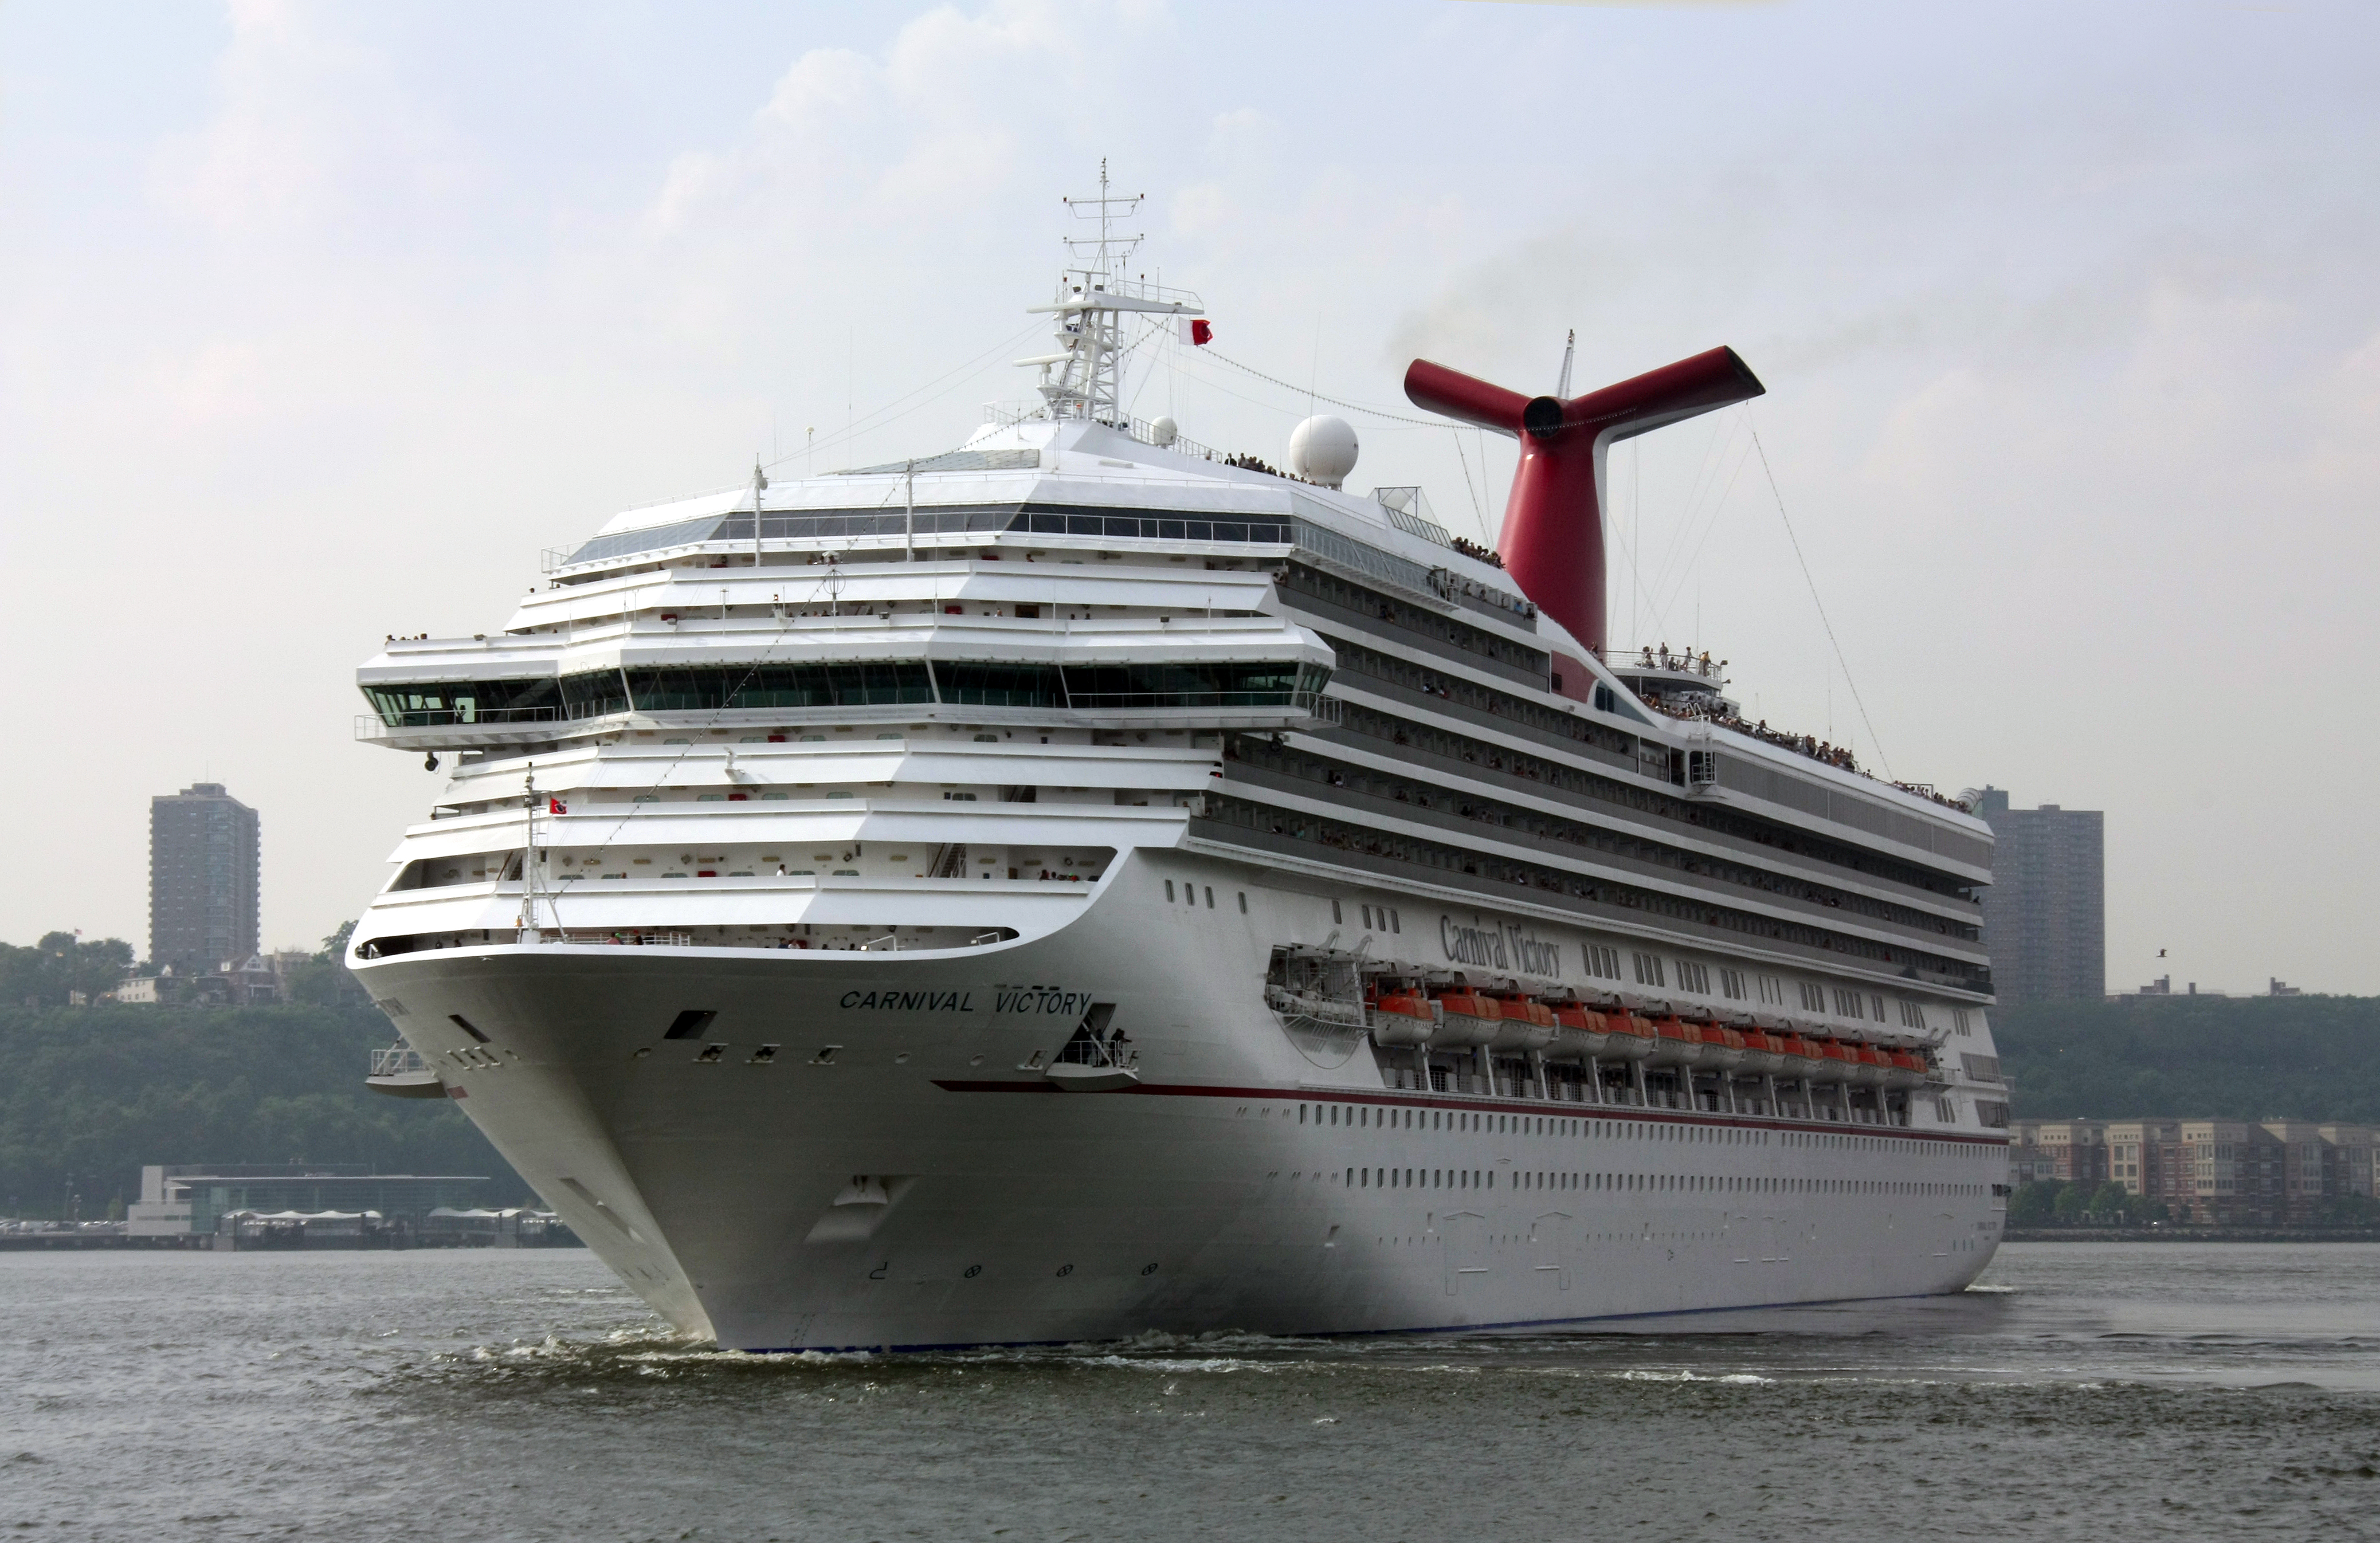 Carnival corporation comprehensive analysis